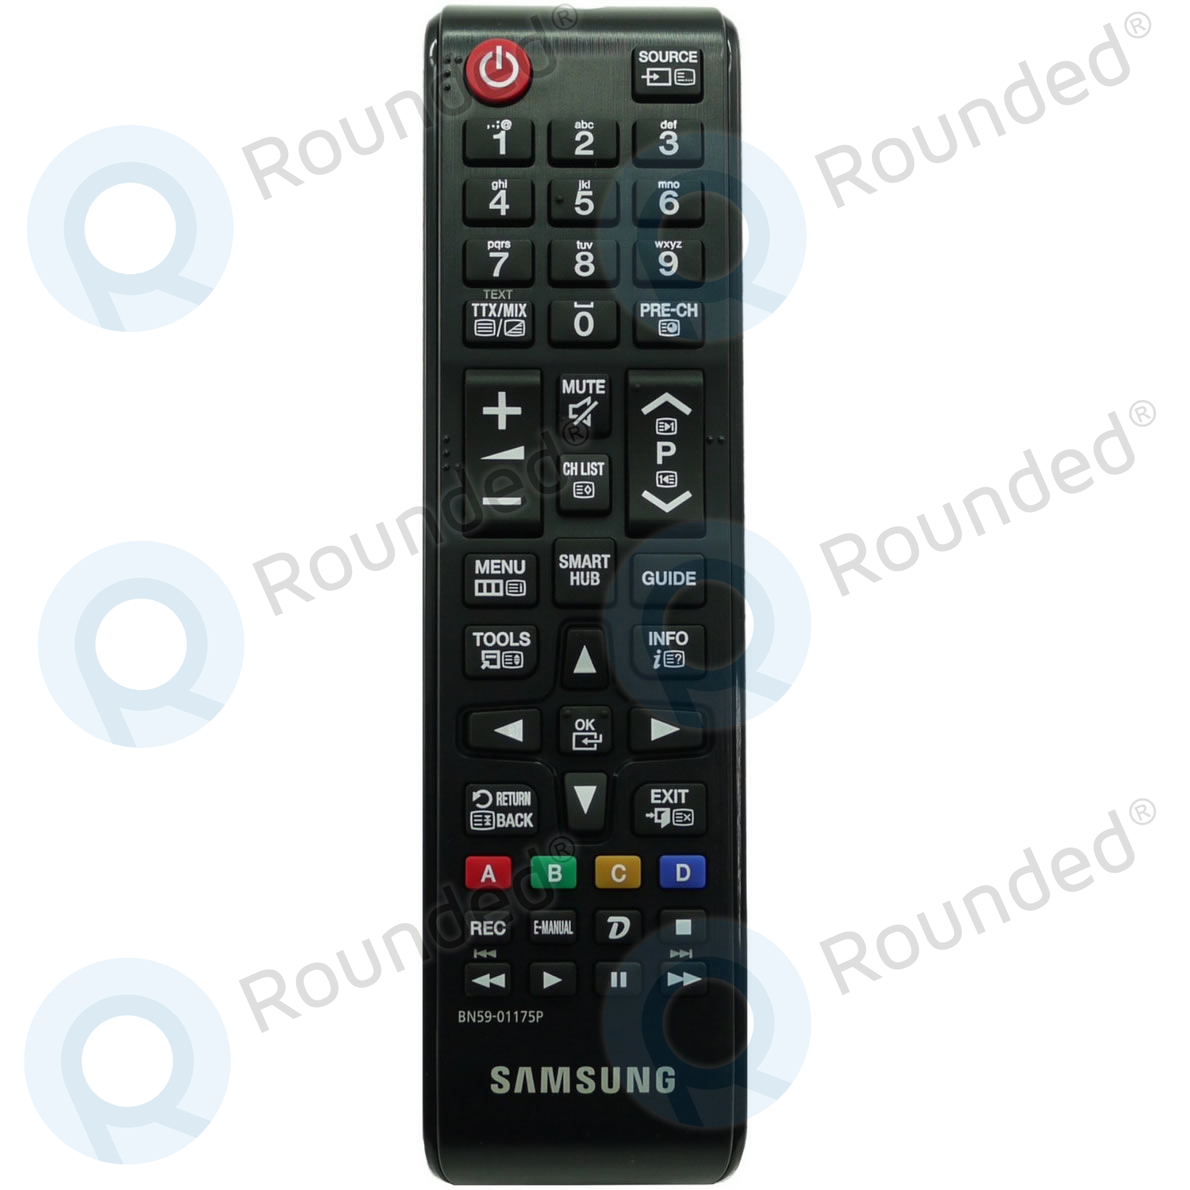 remote controller cars with Samsung Remote Control Tm1240a Bn59 01175p Bn59 01175p on Streaming U Wagen Ob Van For Productions Fuer Produktionen Livestreaming also 2015 Lamborghini Lp Racer Style Rc Ride On Car For Kids 955037914 together with 8 Blade Propeller For Tiansheng Model A400m Rc Cargo Plane additionally Every Mario Party Game Ranked besides 185746.